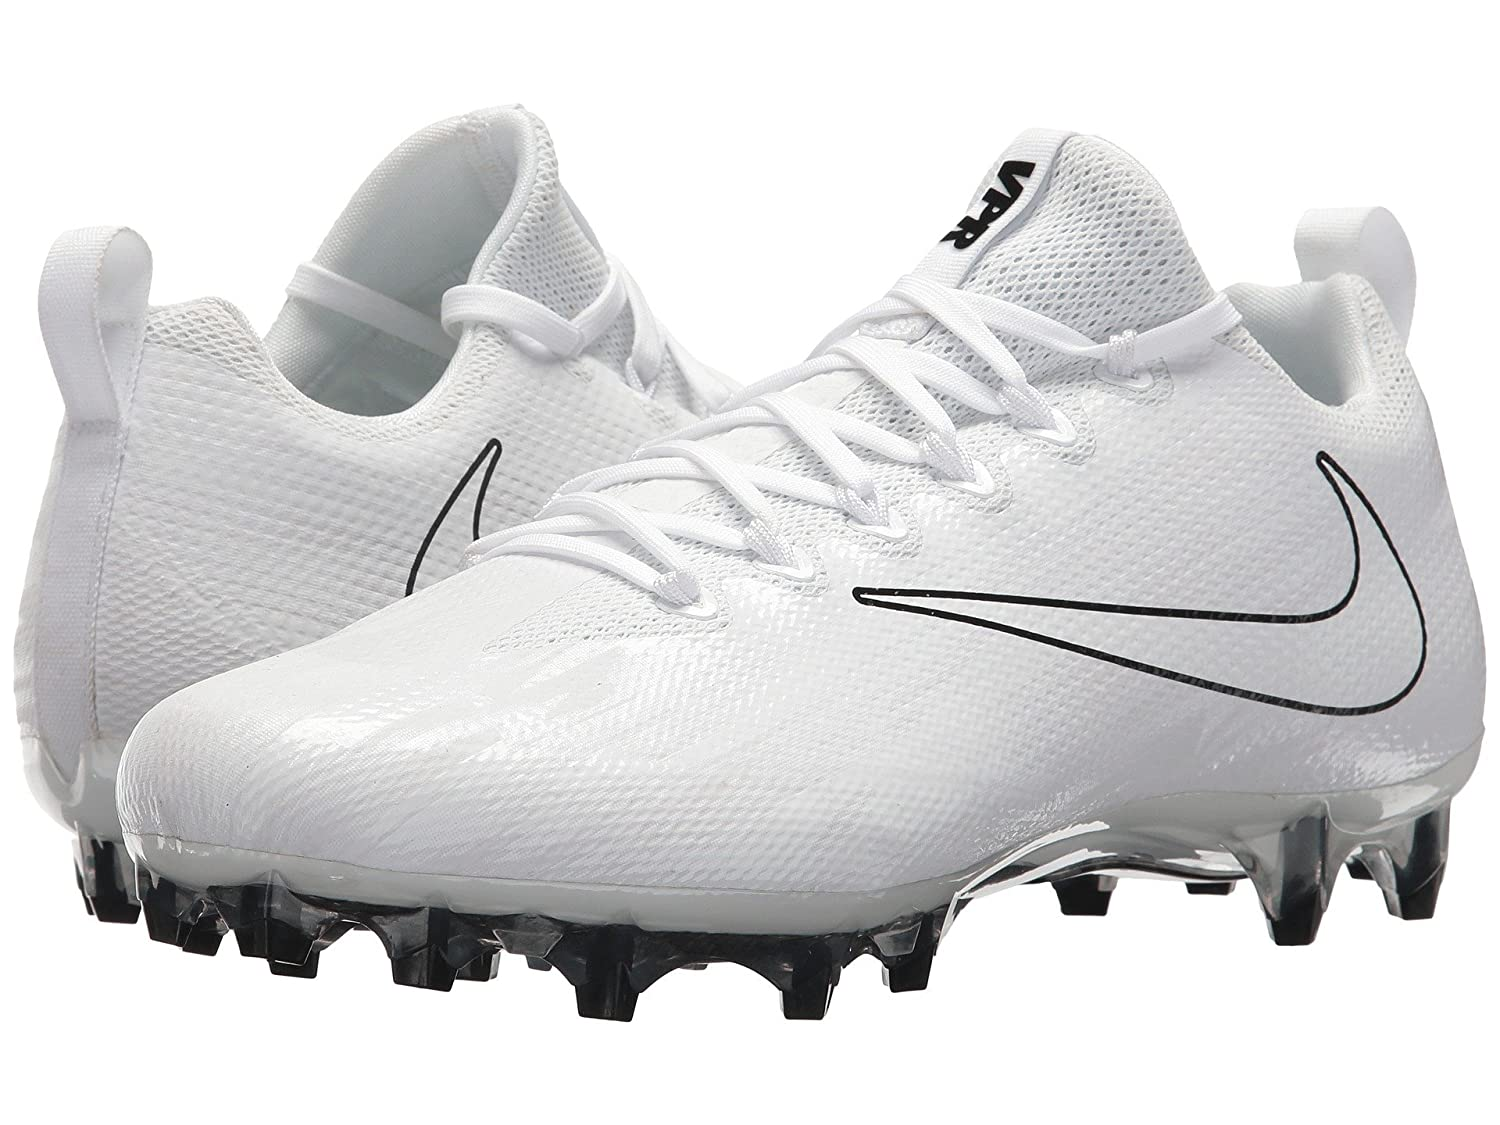 (ナイキ) NIKE メンズフットボールアメフトシューズ靴 Vapor Untouchable Pro Lax White/White/Black 9 (27cm) D - Medium B078Q23XTD